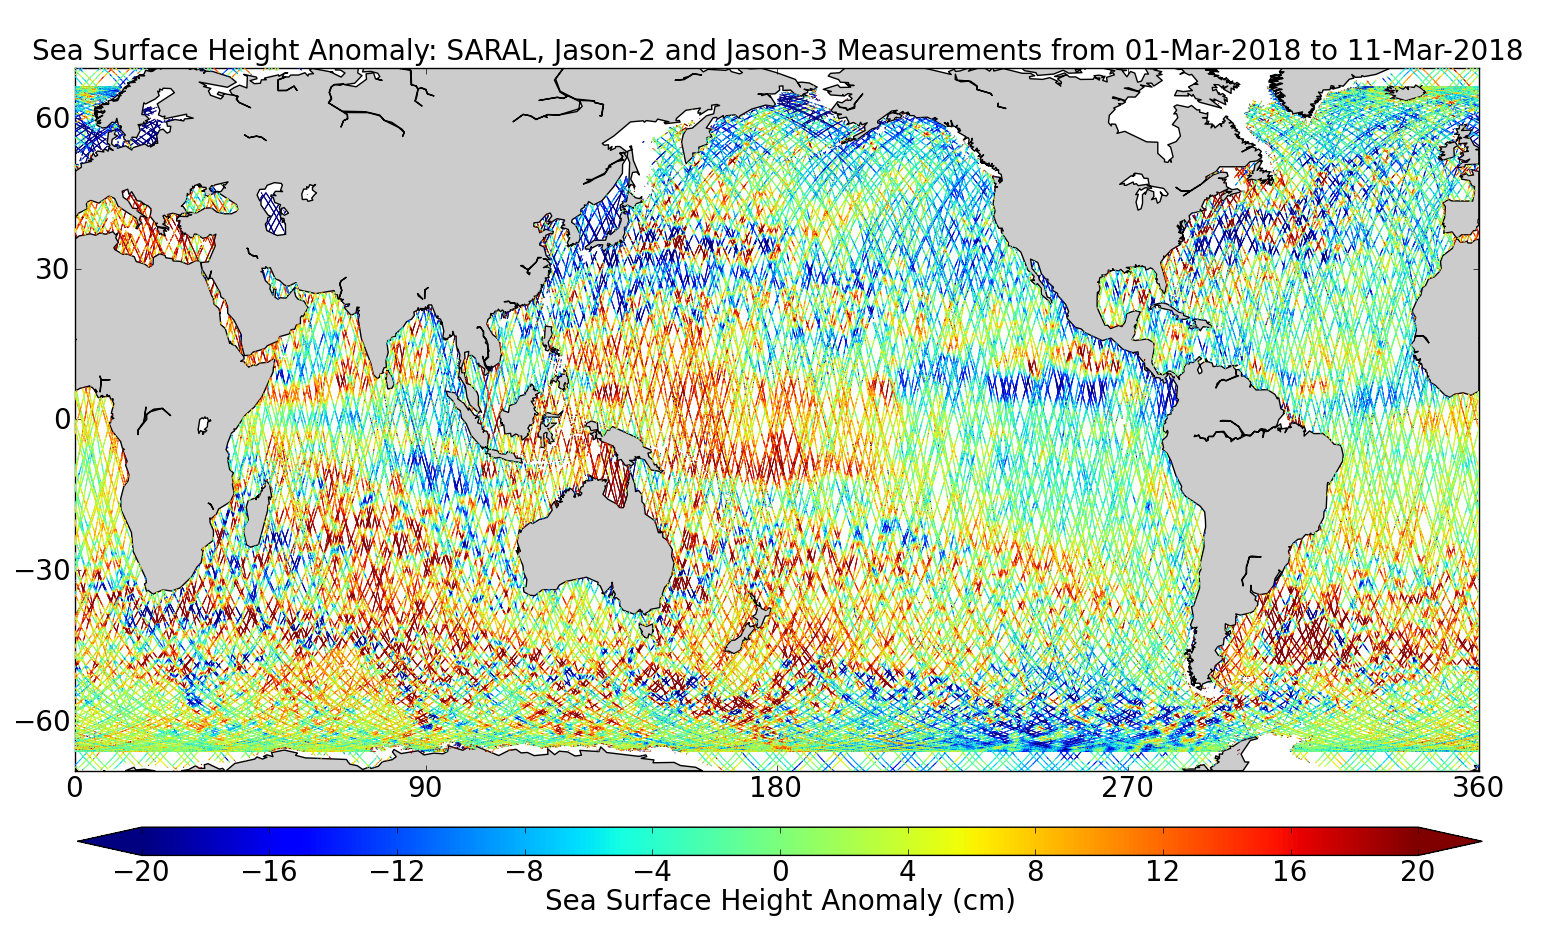 Sea Surface Height Anomaly: SARAL, Jason-2 and Jason-3 Measurements from 01-Mar-2018 to 11-Mar-2018